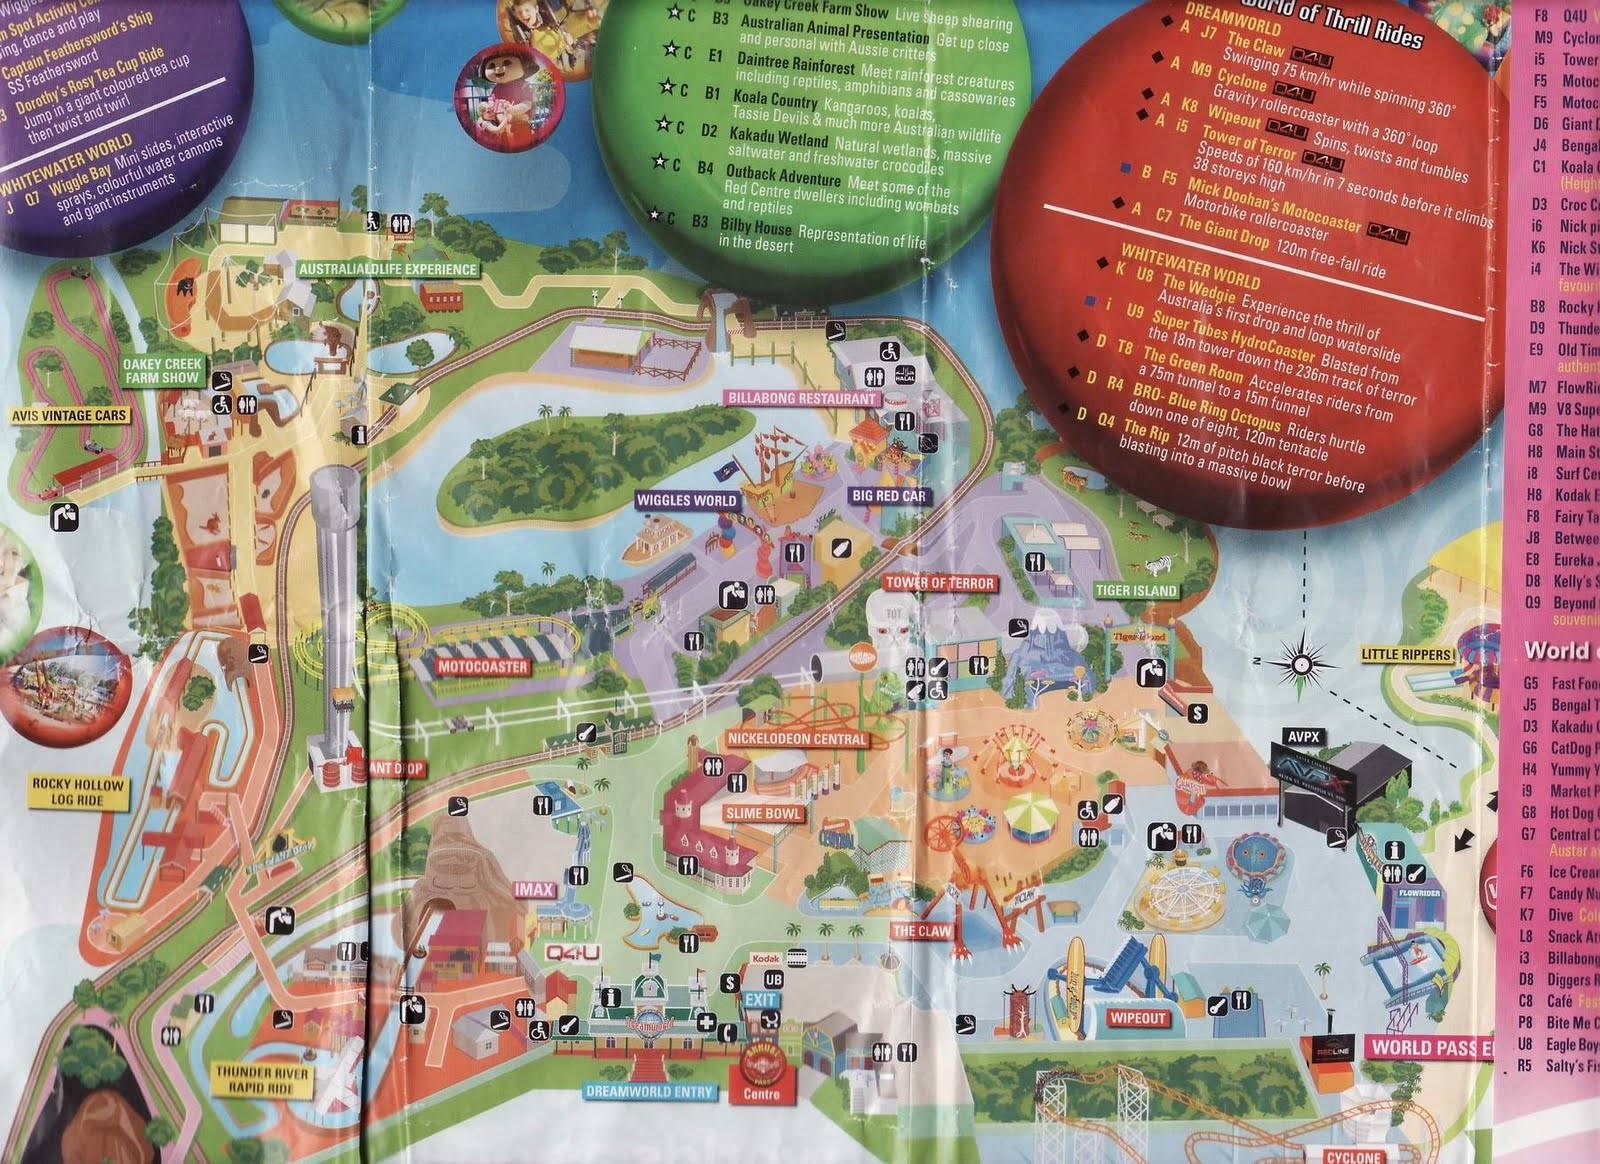 Sengkangbabies gold coast dream world day 6 from the map you will easily take one full day to cover dreamworld gumiabroncs Choice Image